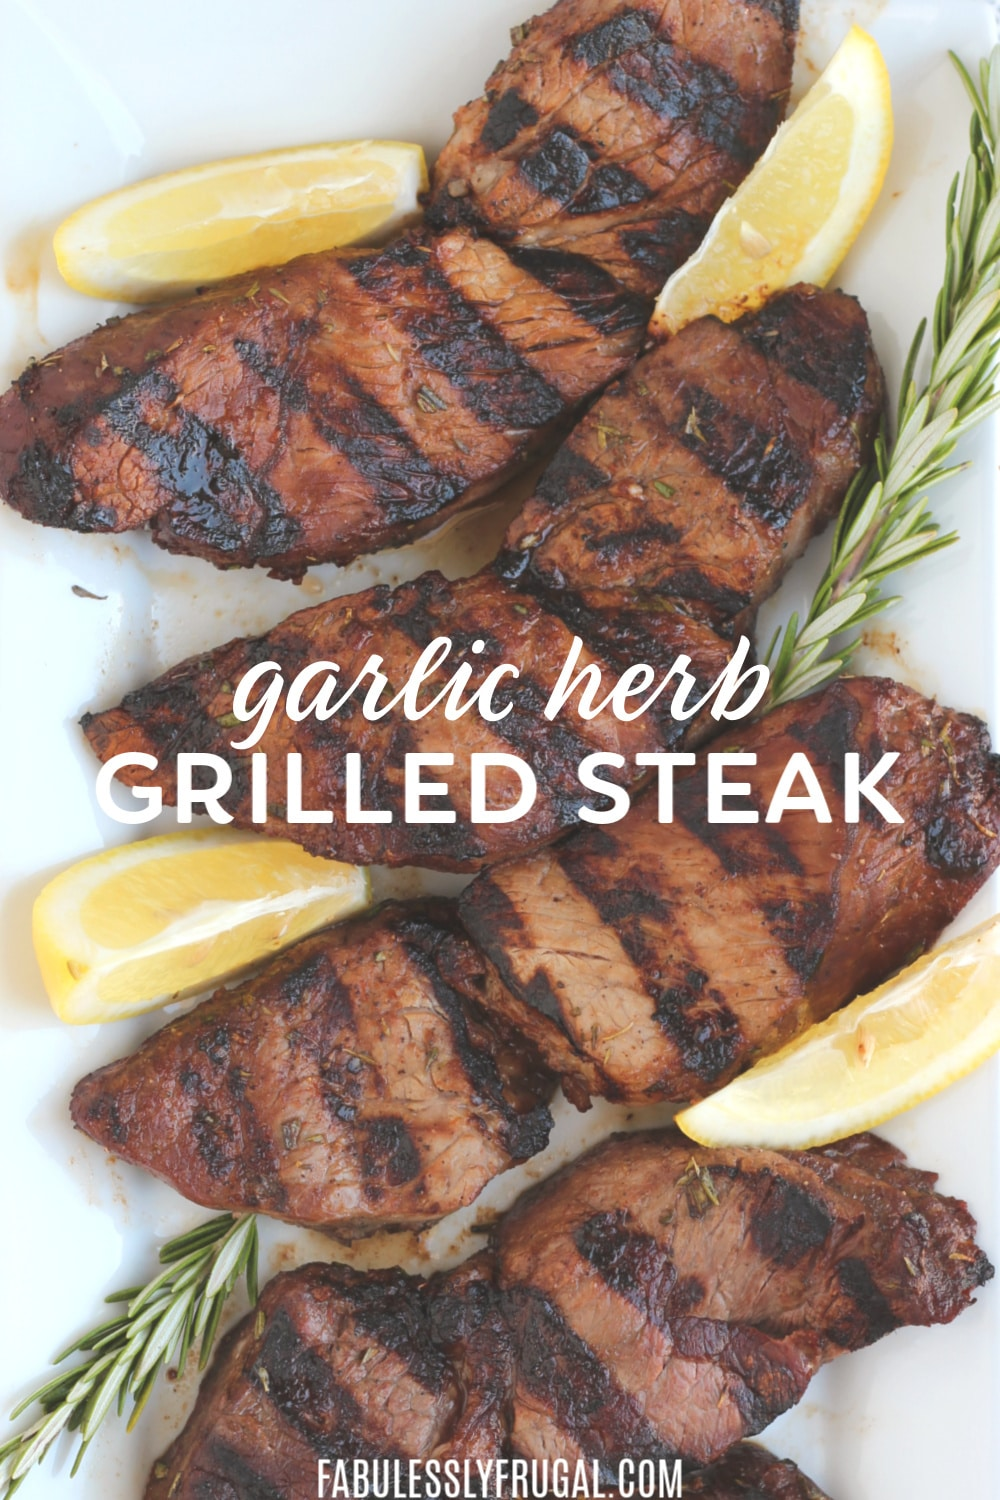 Amazing garlic herb steak tips recipe - easy and delicious